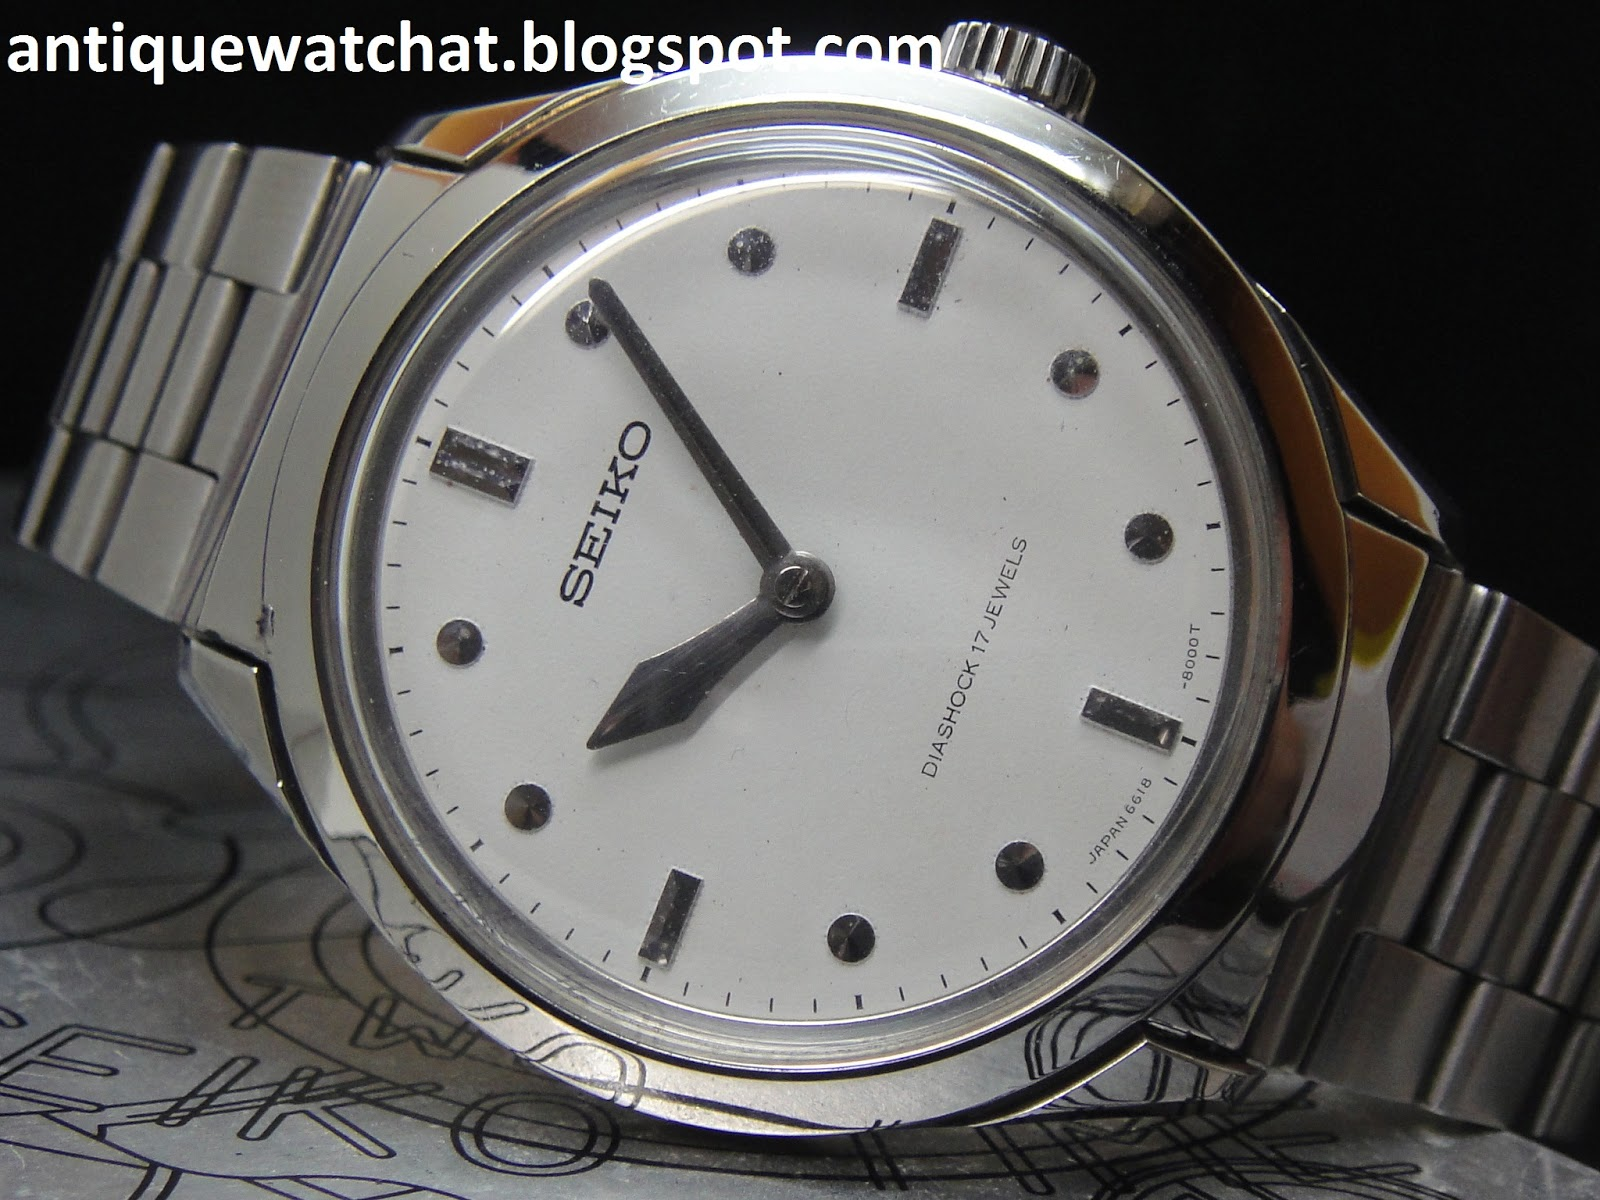 so blind indexes be and read fingers people schauer j hands profile time stowa two wrist for post part rg blinds big pocket have easily visiting can quite pforzheim produced watches by